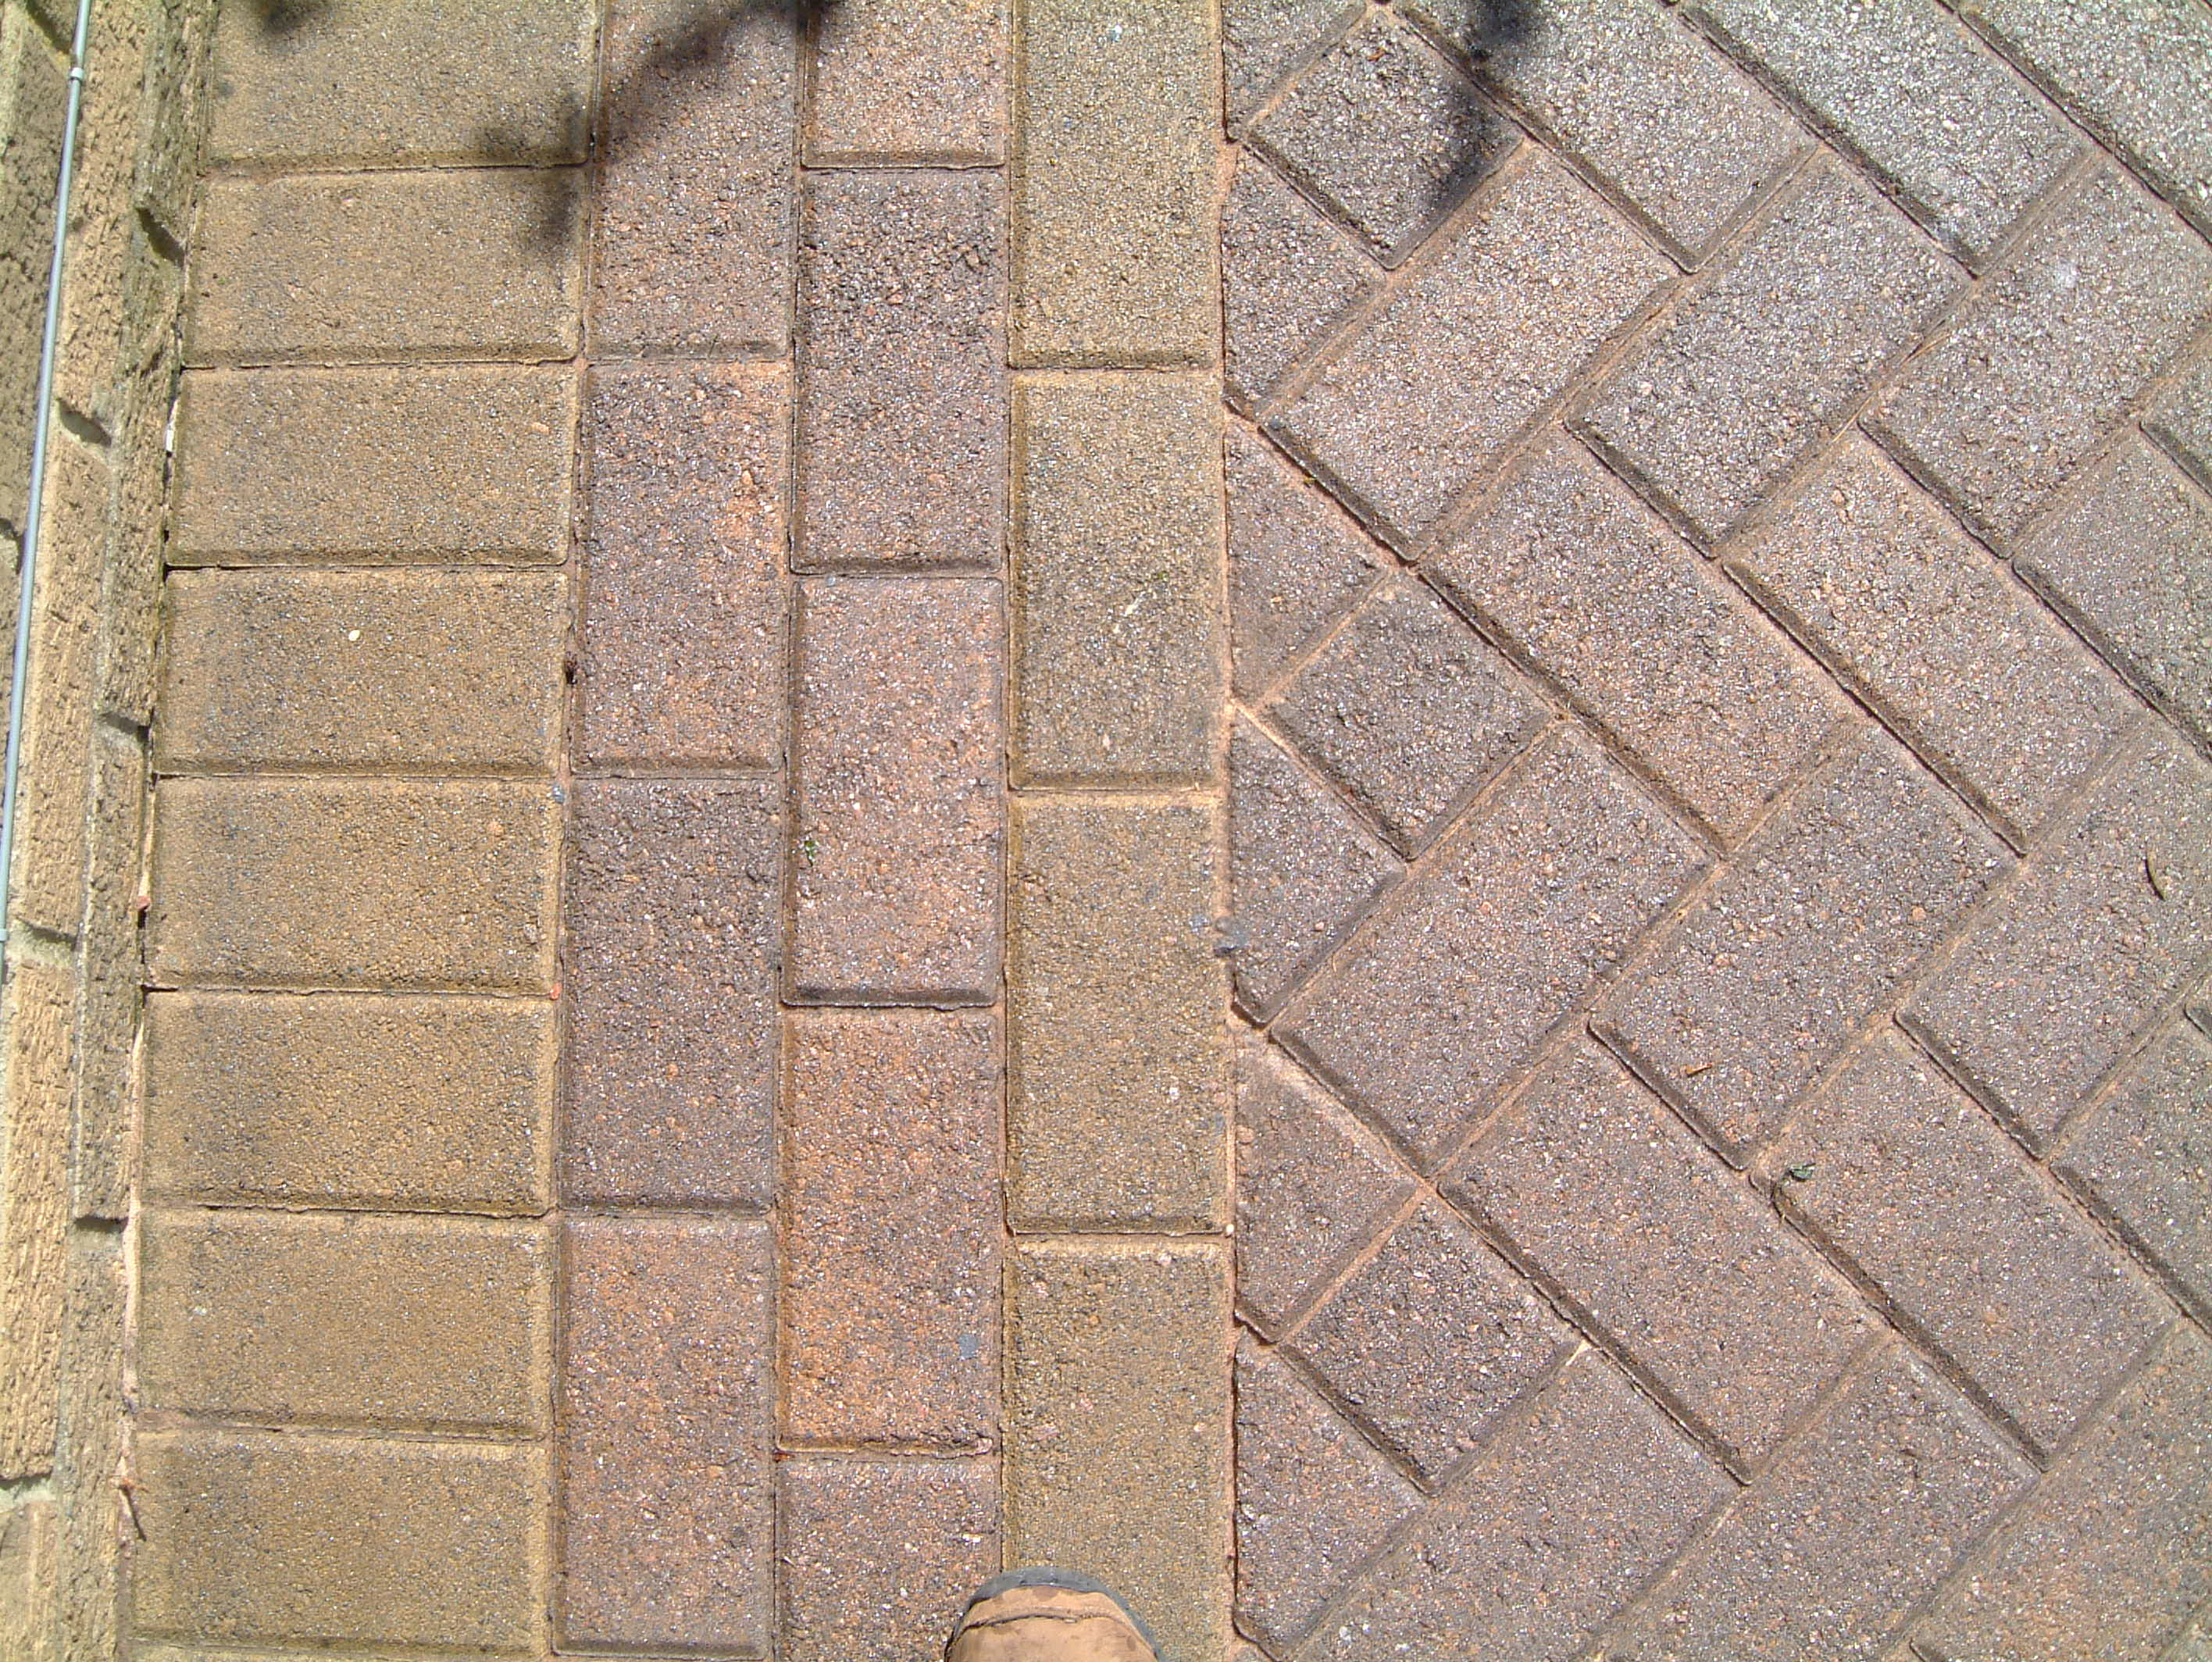 Jet Washing - Blocks post-clean.JPG